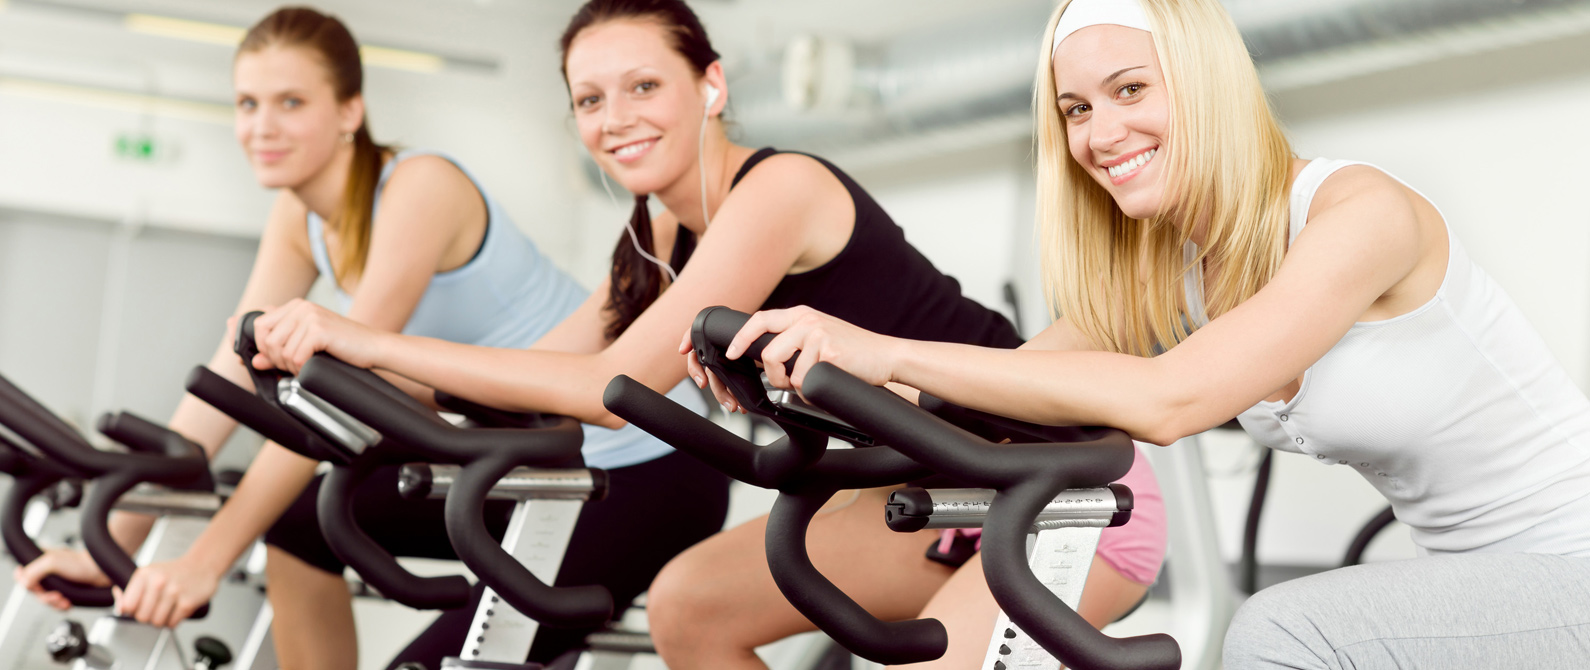 Beautiful young ladies sitting on gym cycle and smiling at camera